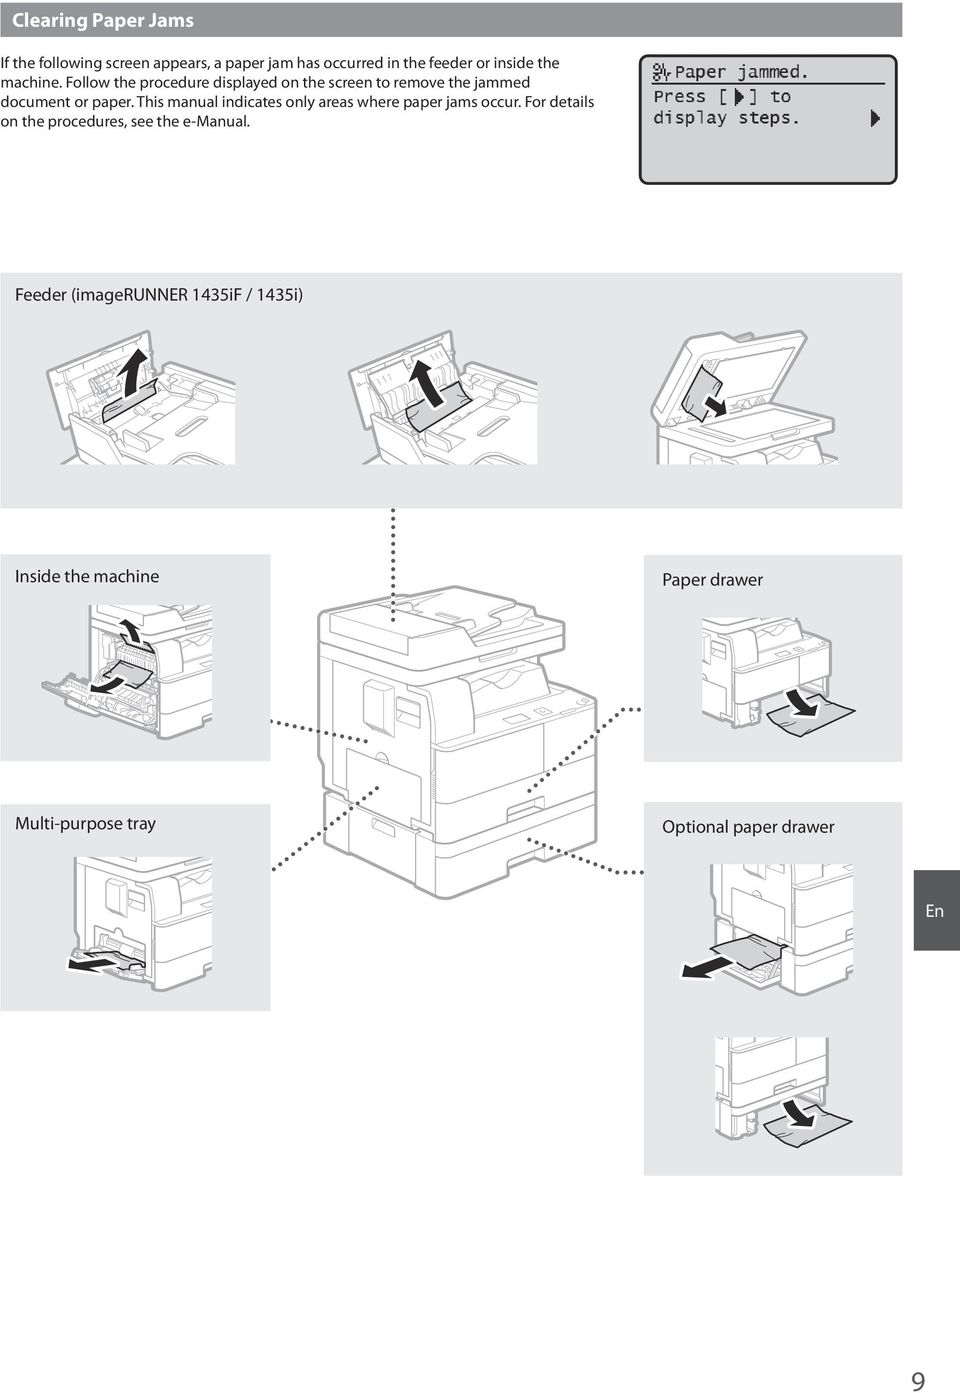 This manual indicates only areas where paper jams occur. For details on the procedures, see the e-manual.